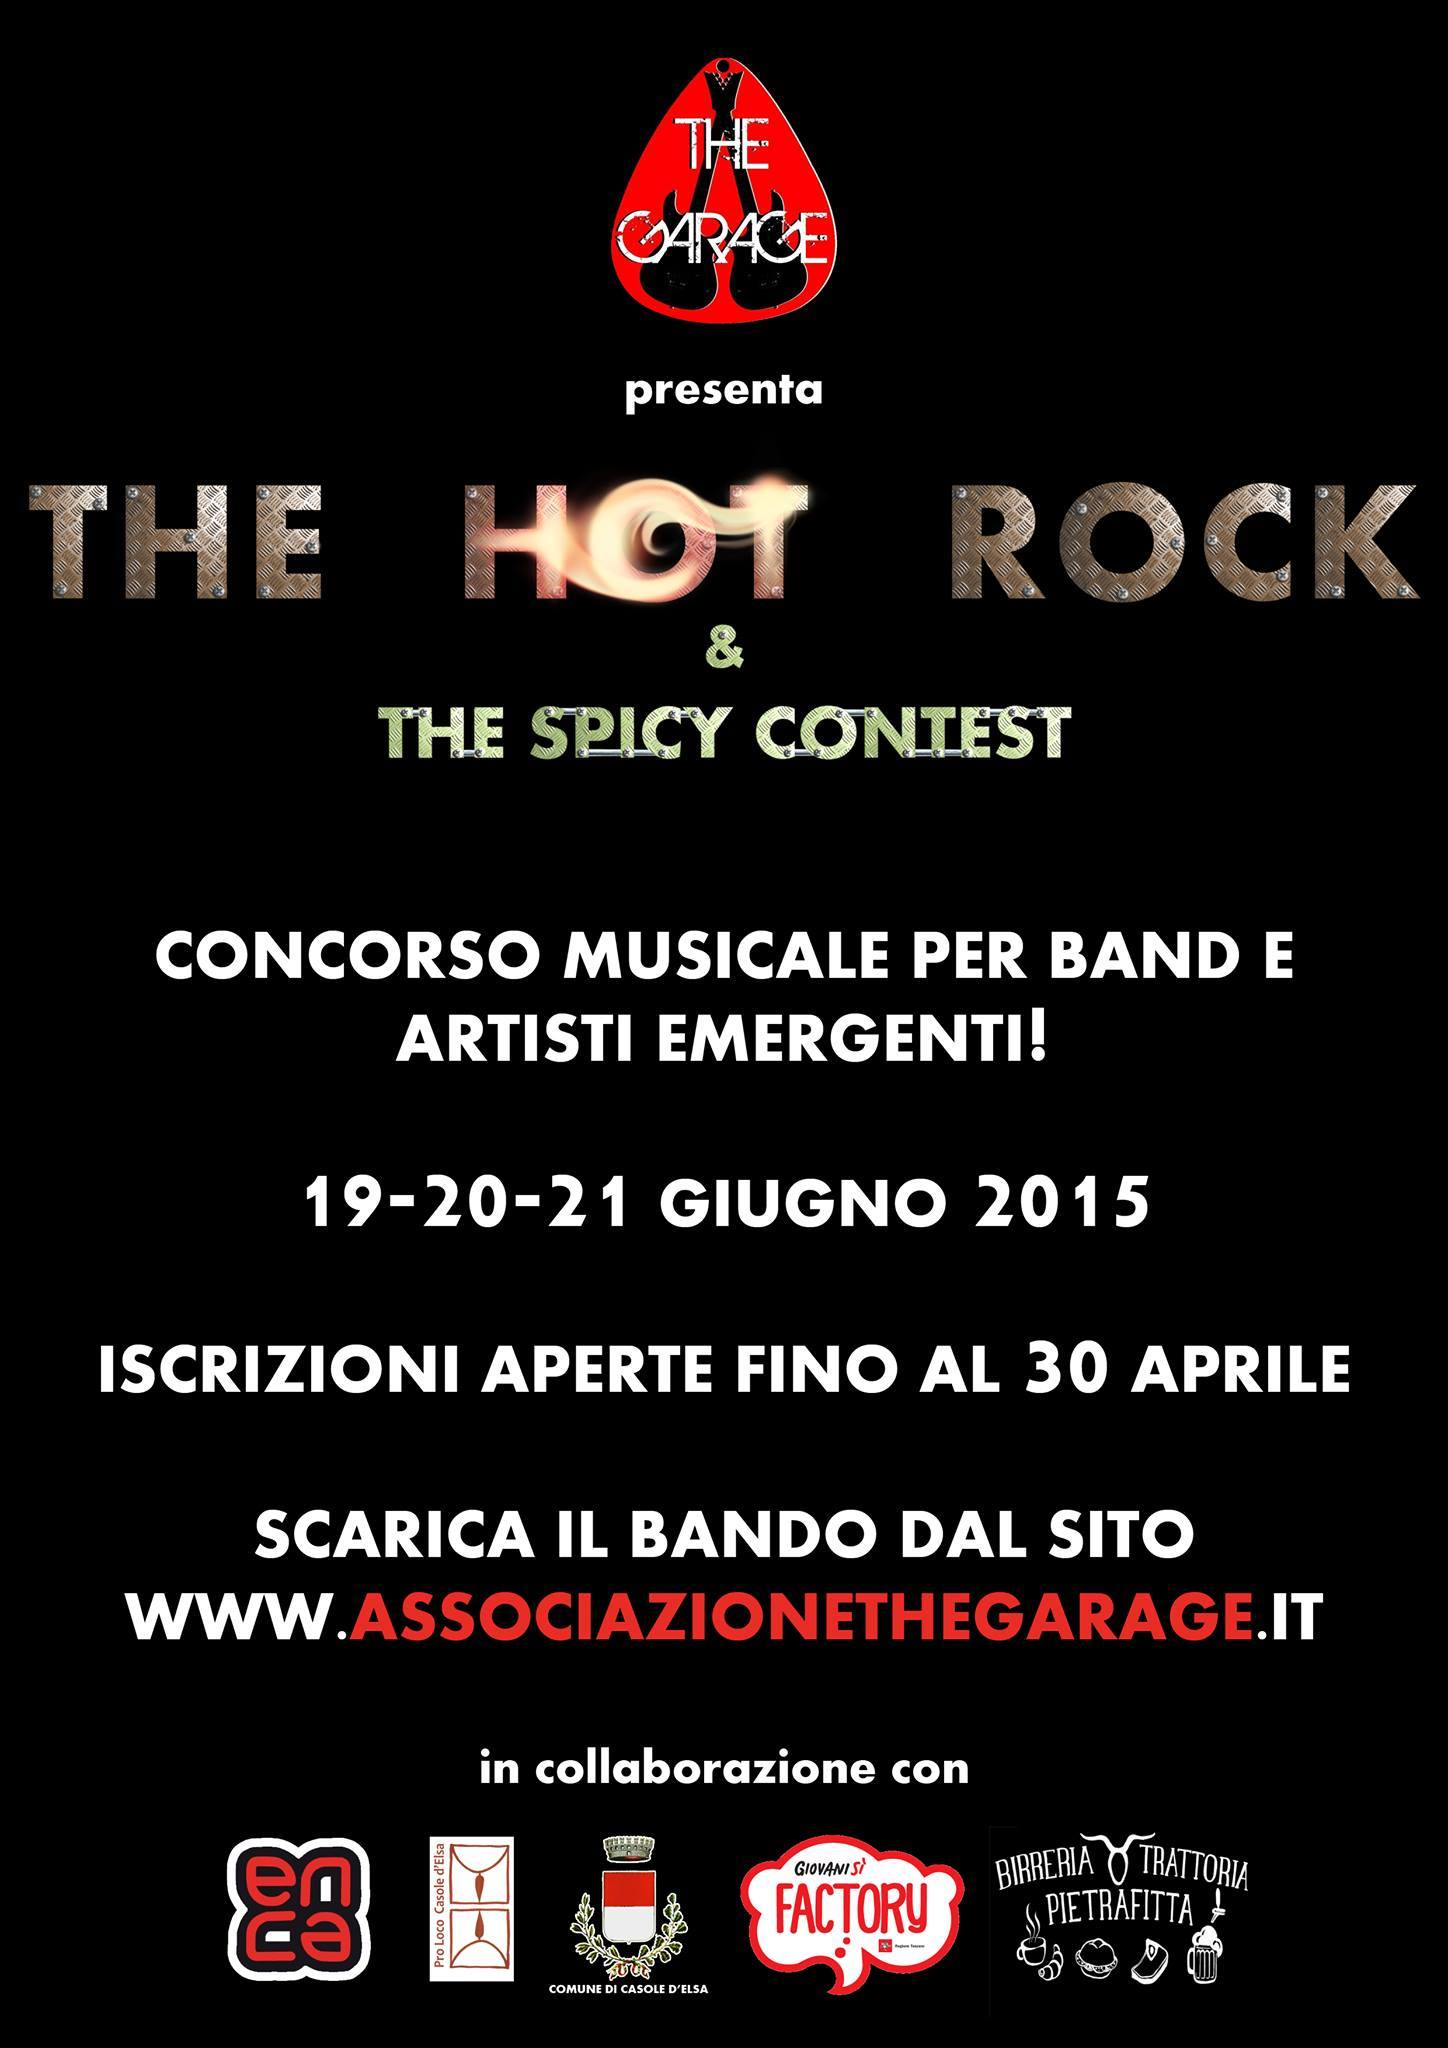 The Hot Rock & Spicy Contest